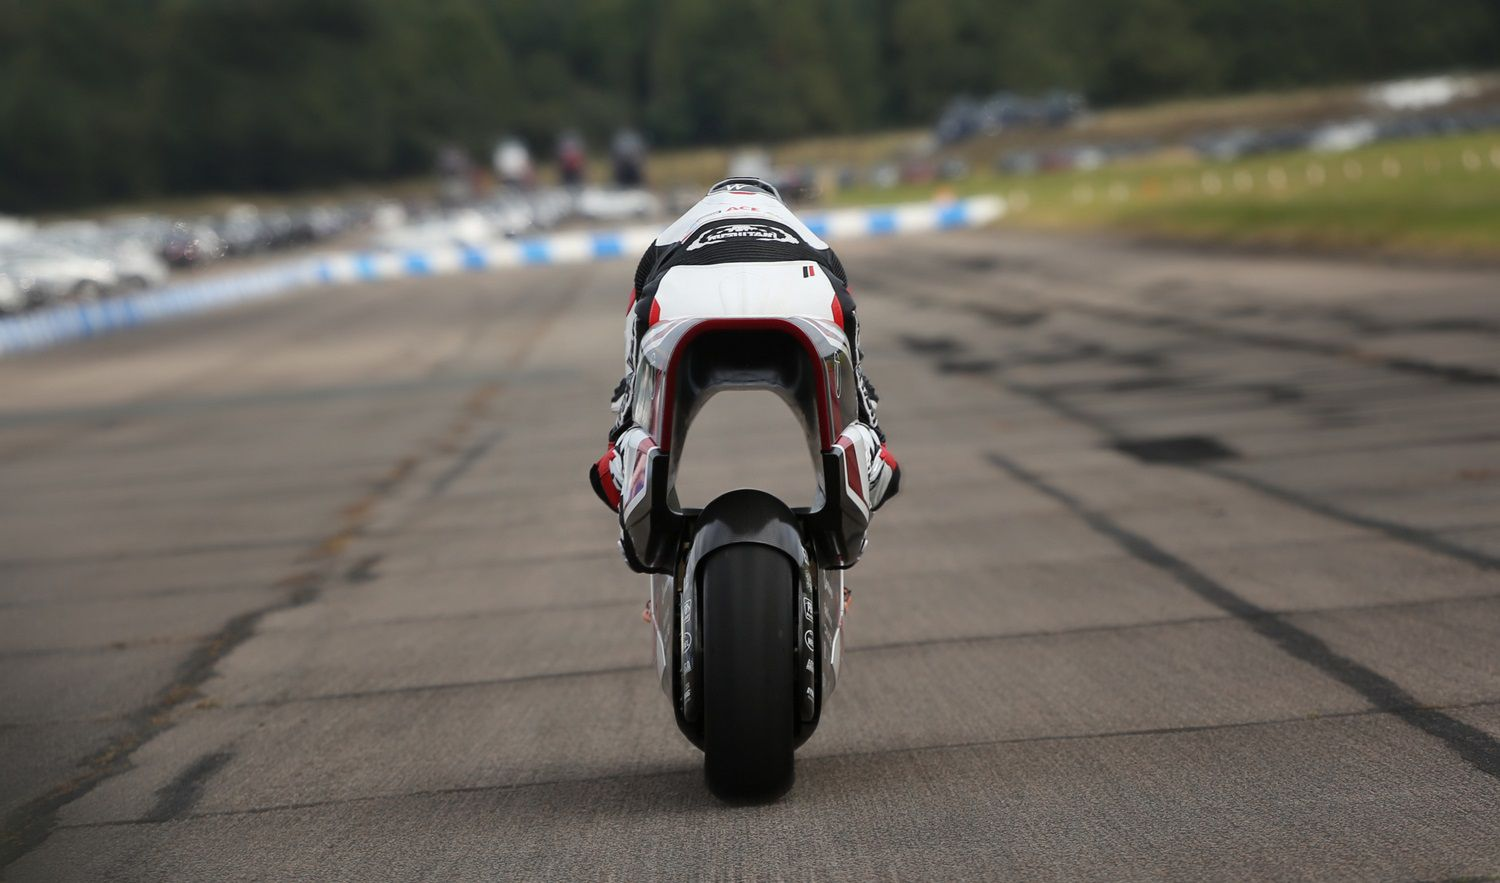 The bike's run at a world land speed record will likely come in 2022.